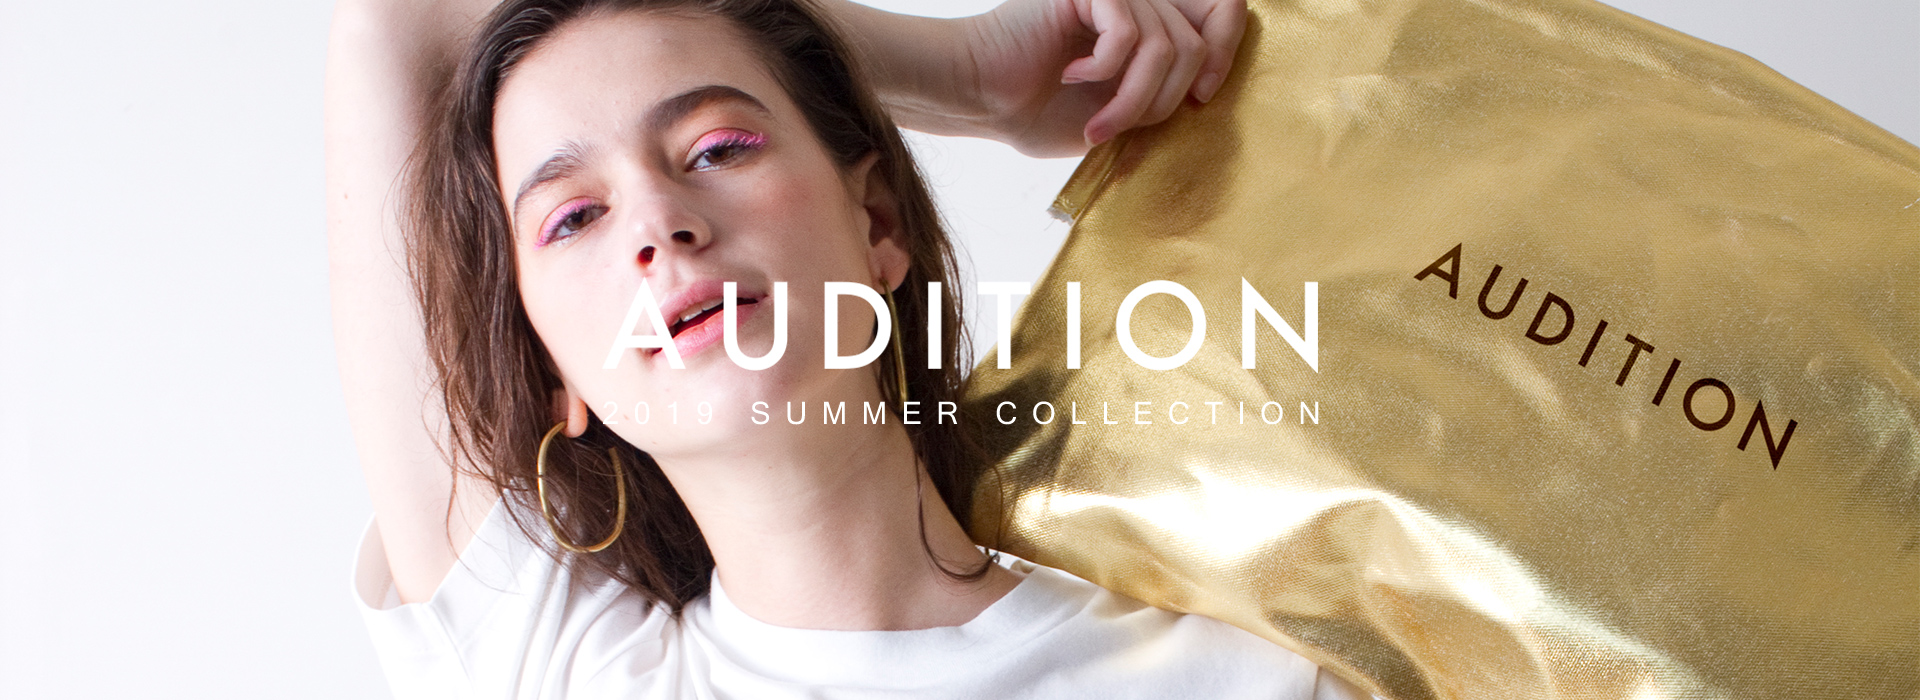 AUDITION 2019 SUMMER COLLECTION